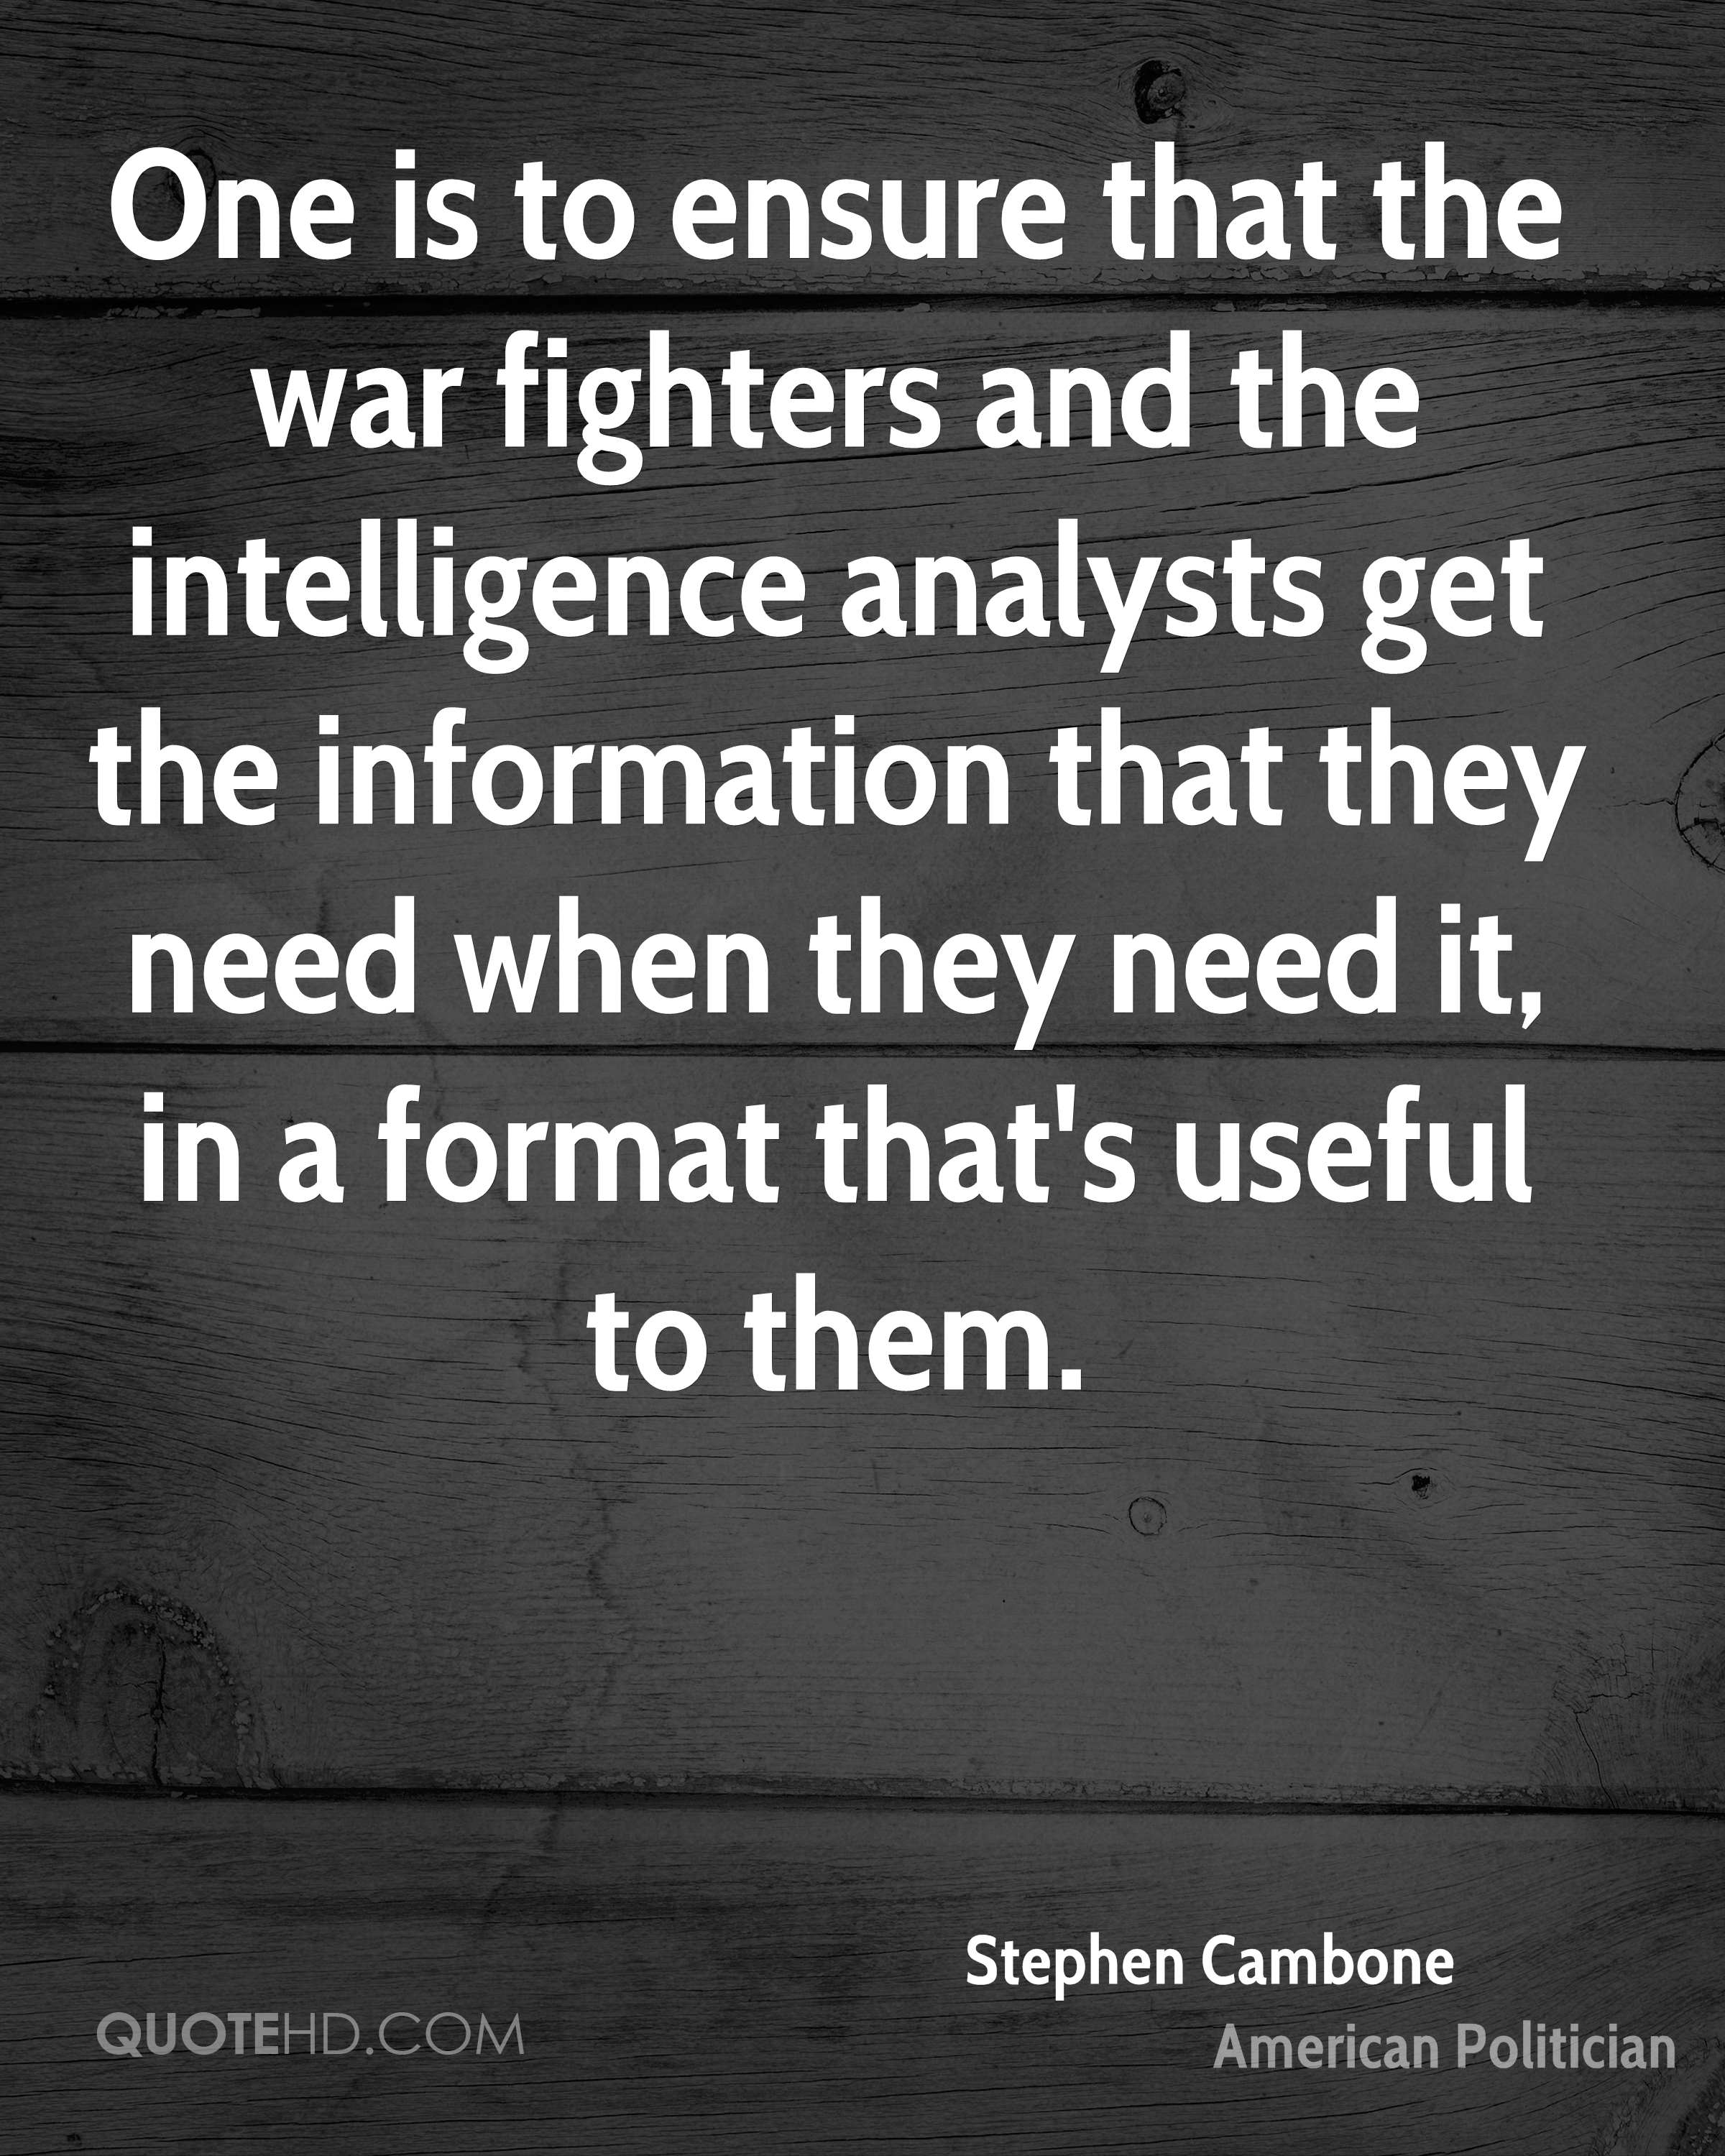 One is to ensure that the war fighters and the intelligence analysts get the information that they need when they need it, in a format that's useful to them.